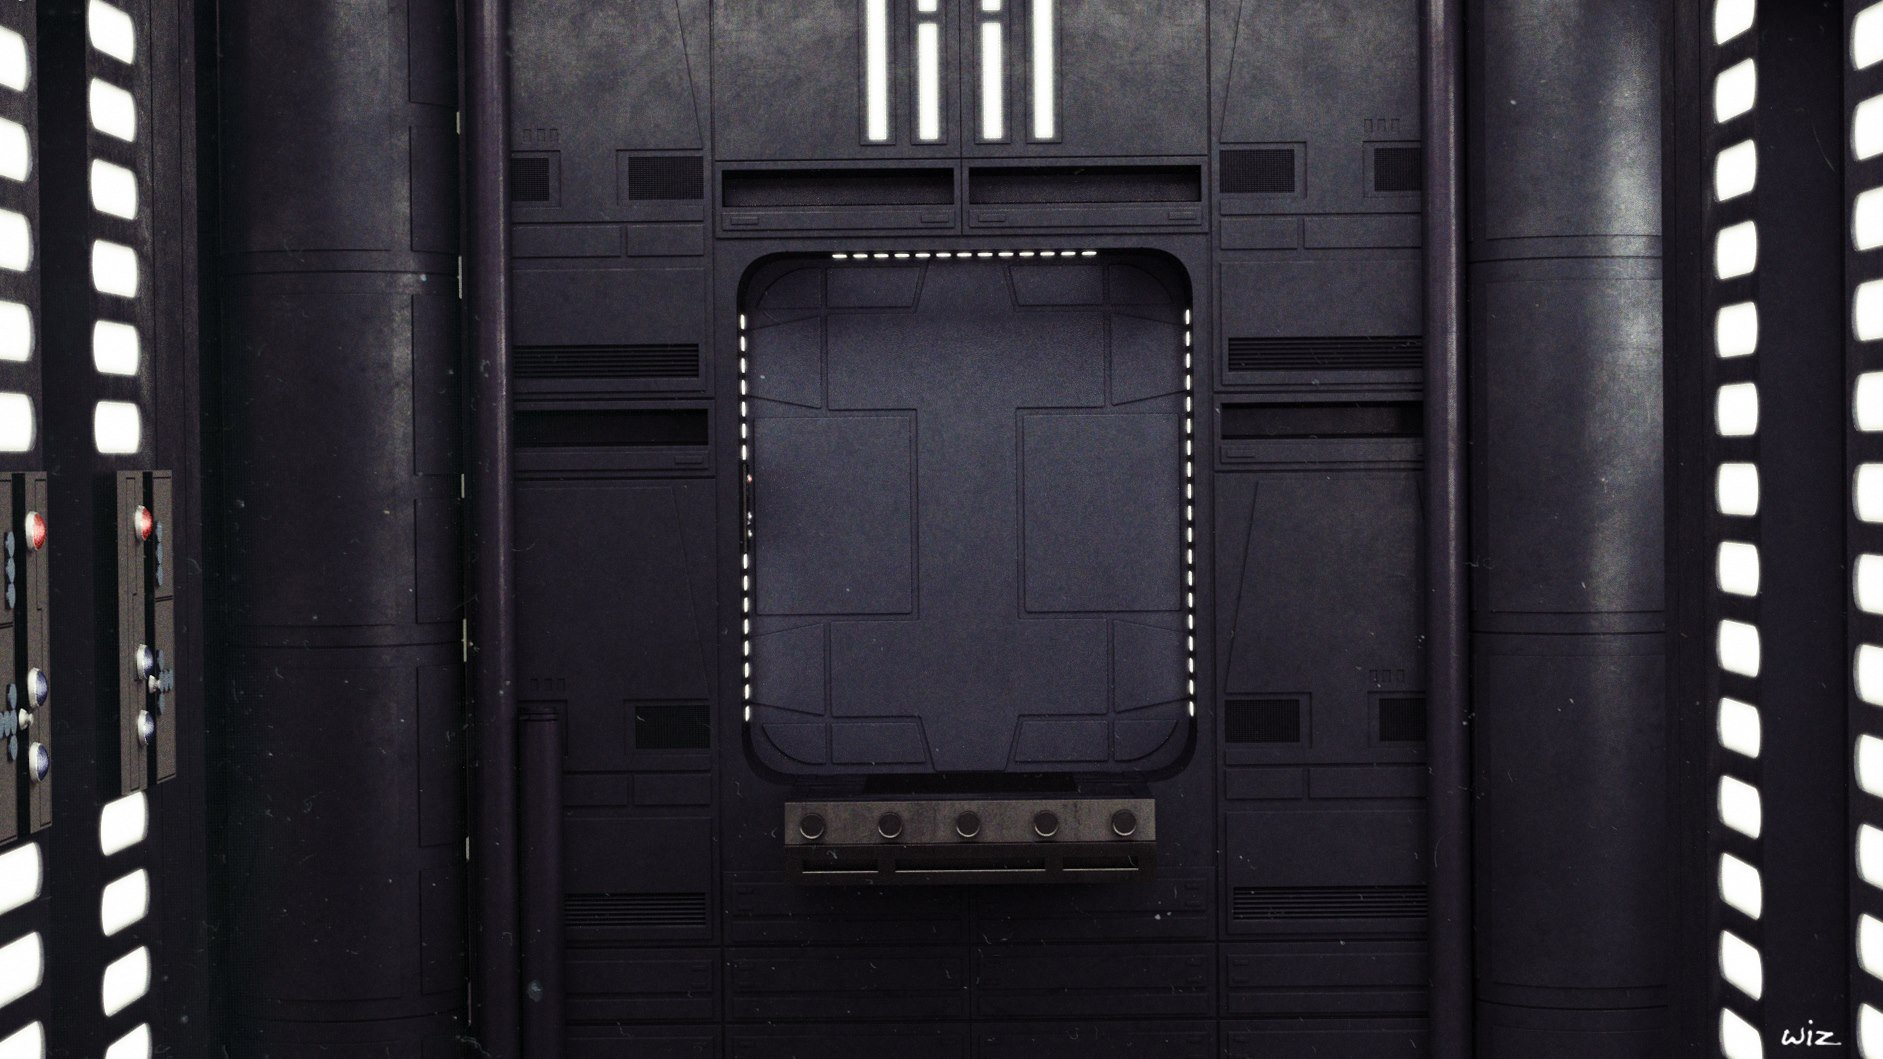 Paul johnson deathstar gantry